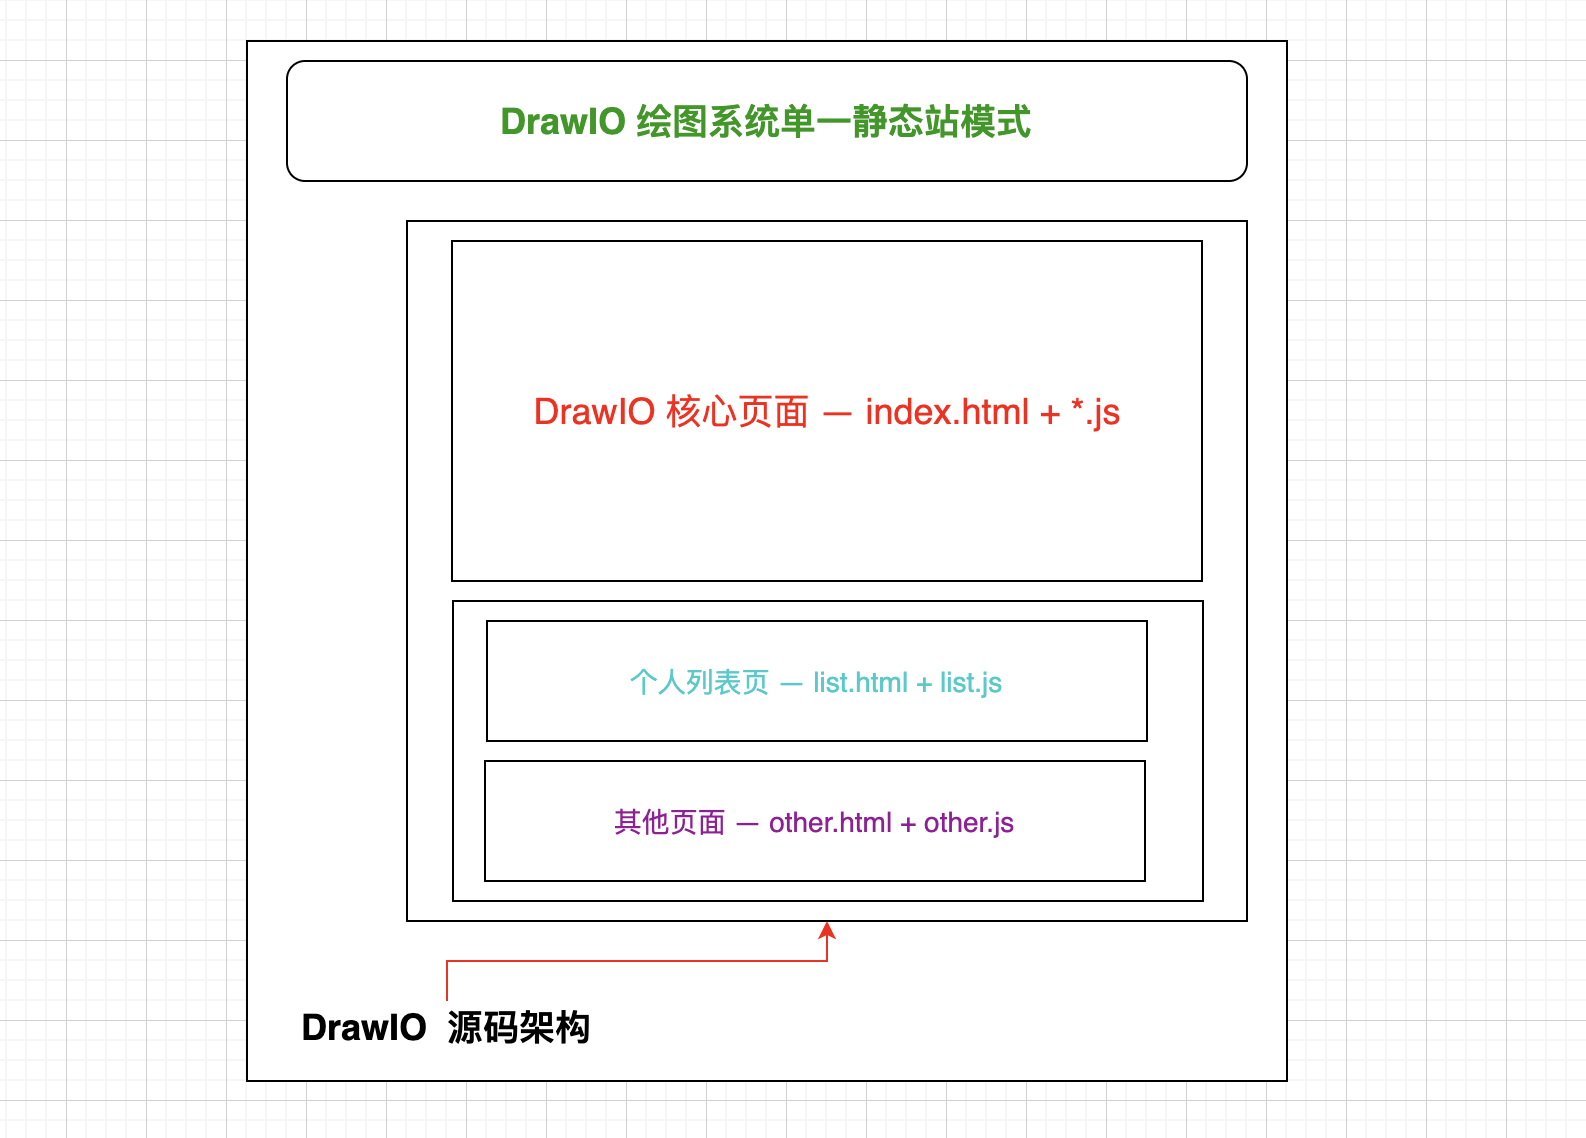 DrawIO Static Site Structure